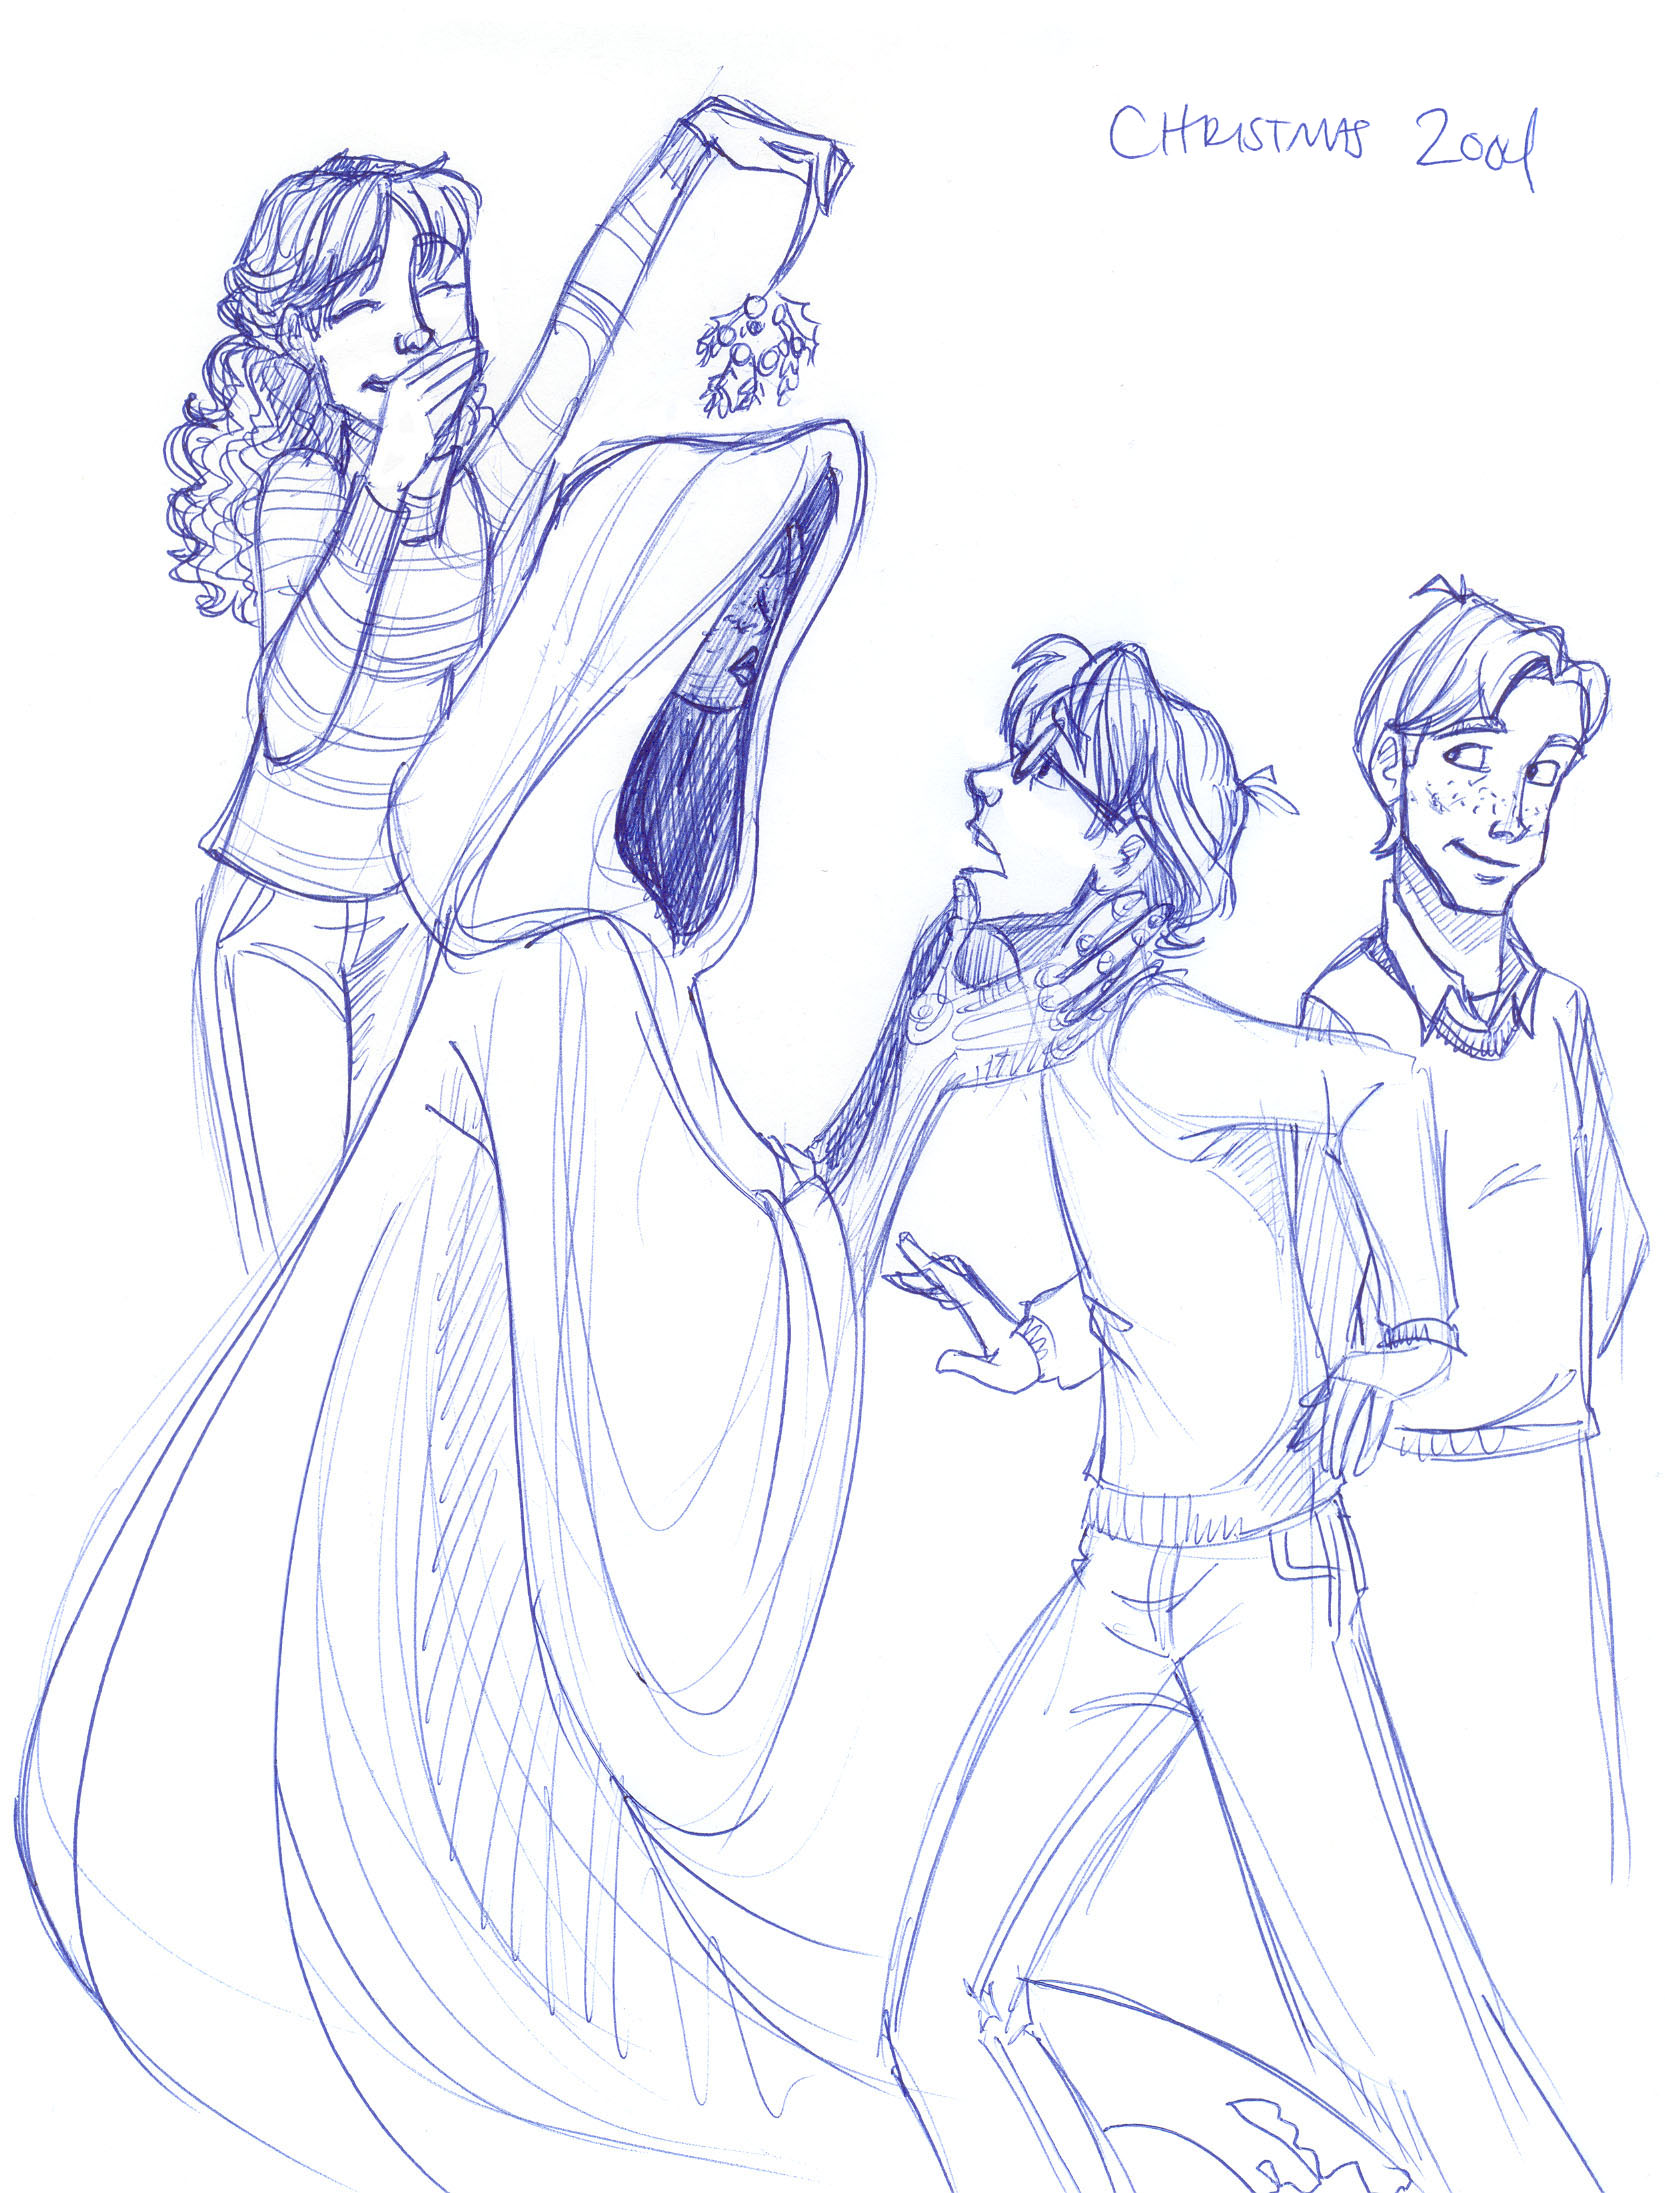 Hermione, Ginny and Ron play an unfunny Christmas prank on Harry...